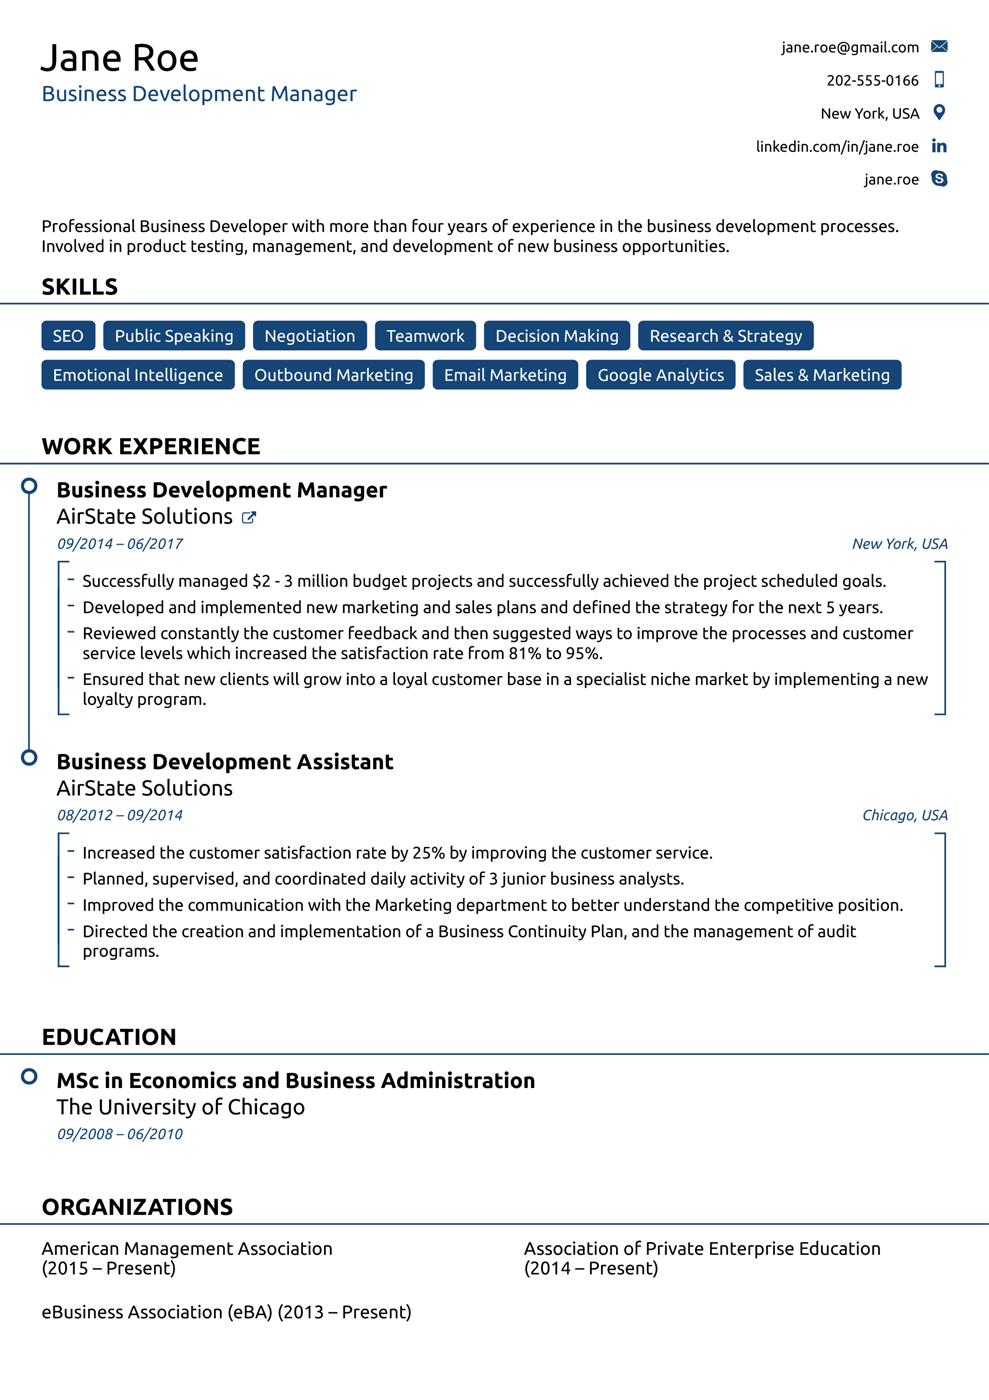 2018 Professional Resume Templates - As They Should Be [8+]